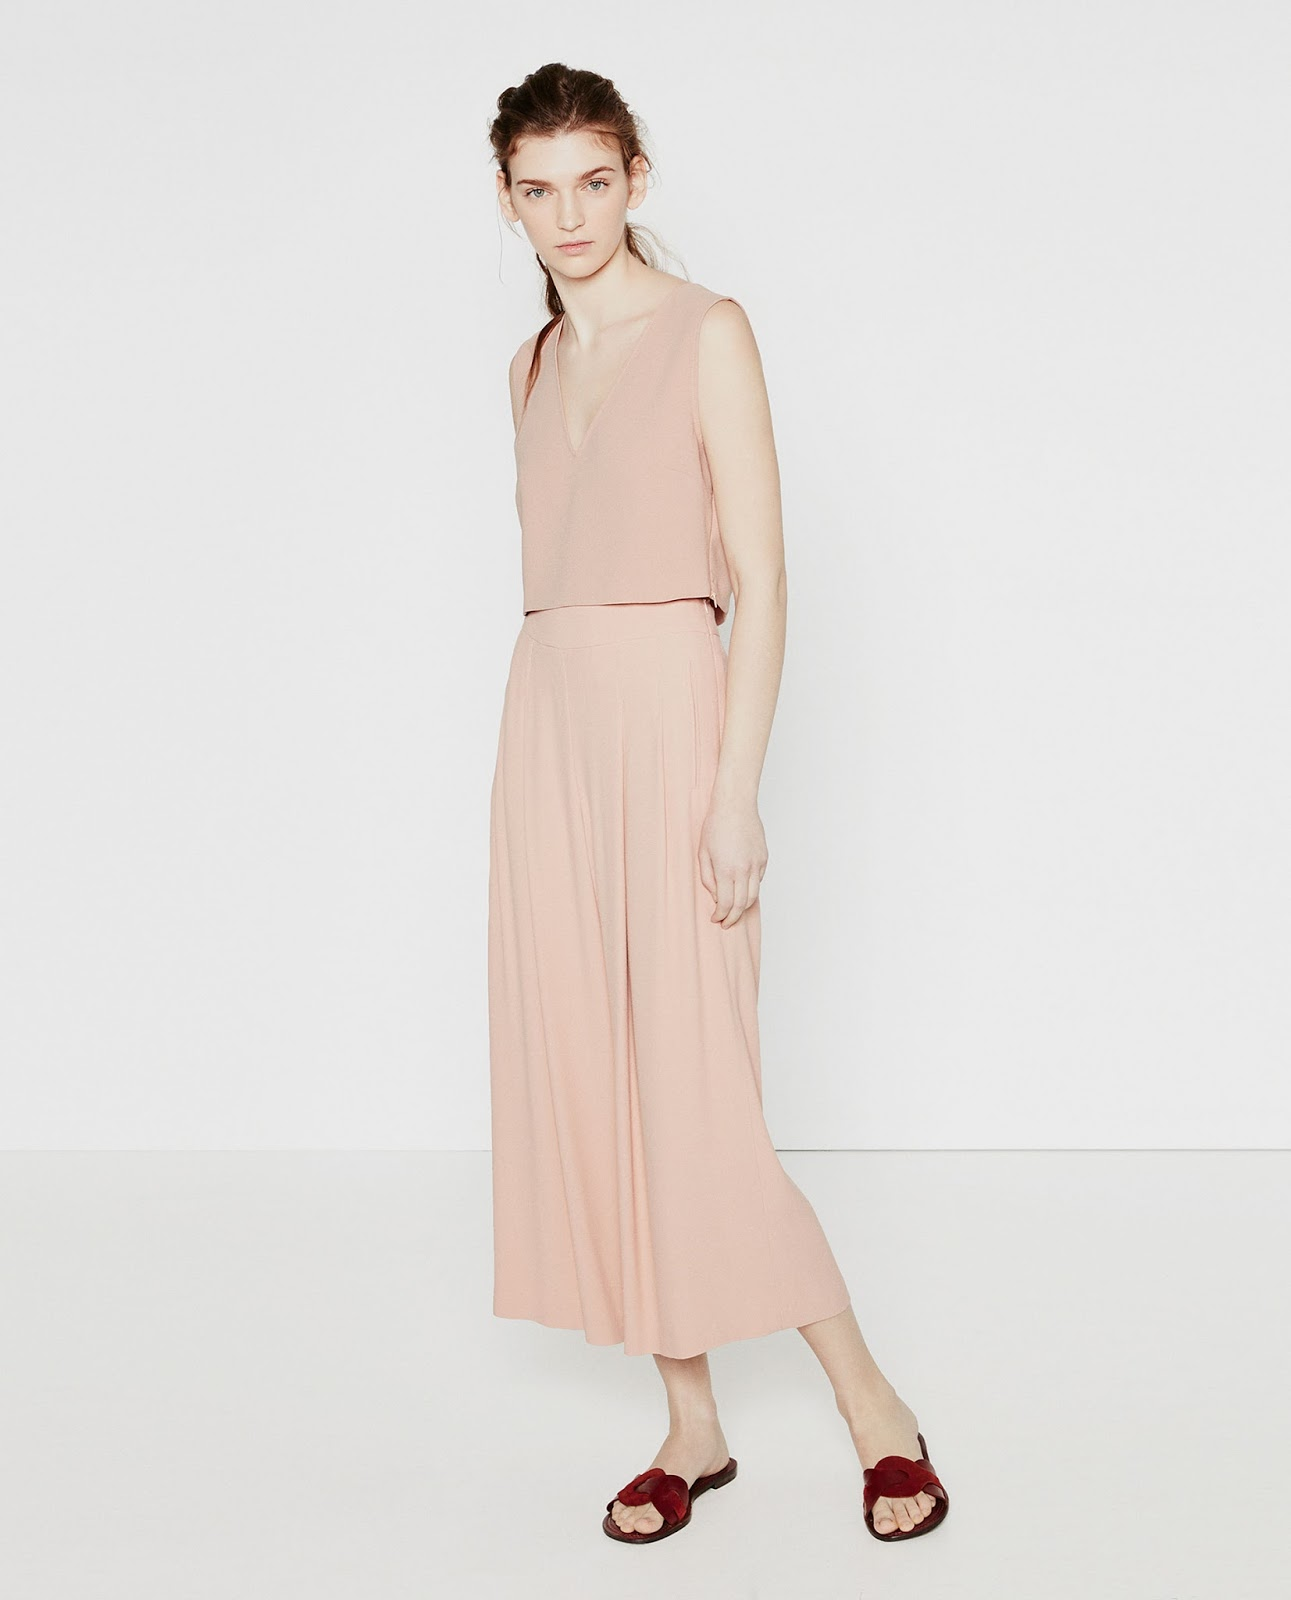 Blush co-ord set with flowing pants and crop top from Zara